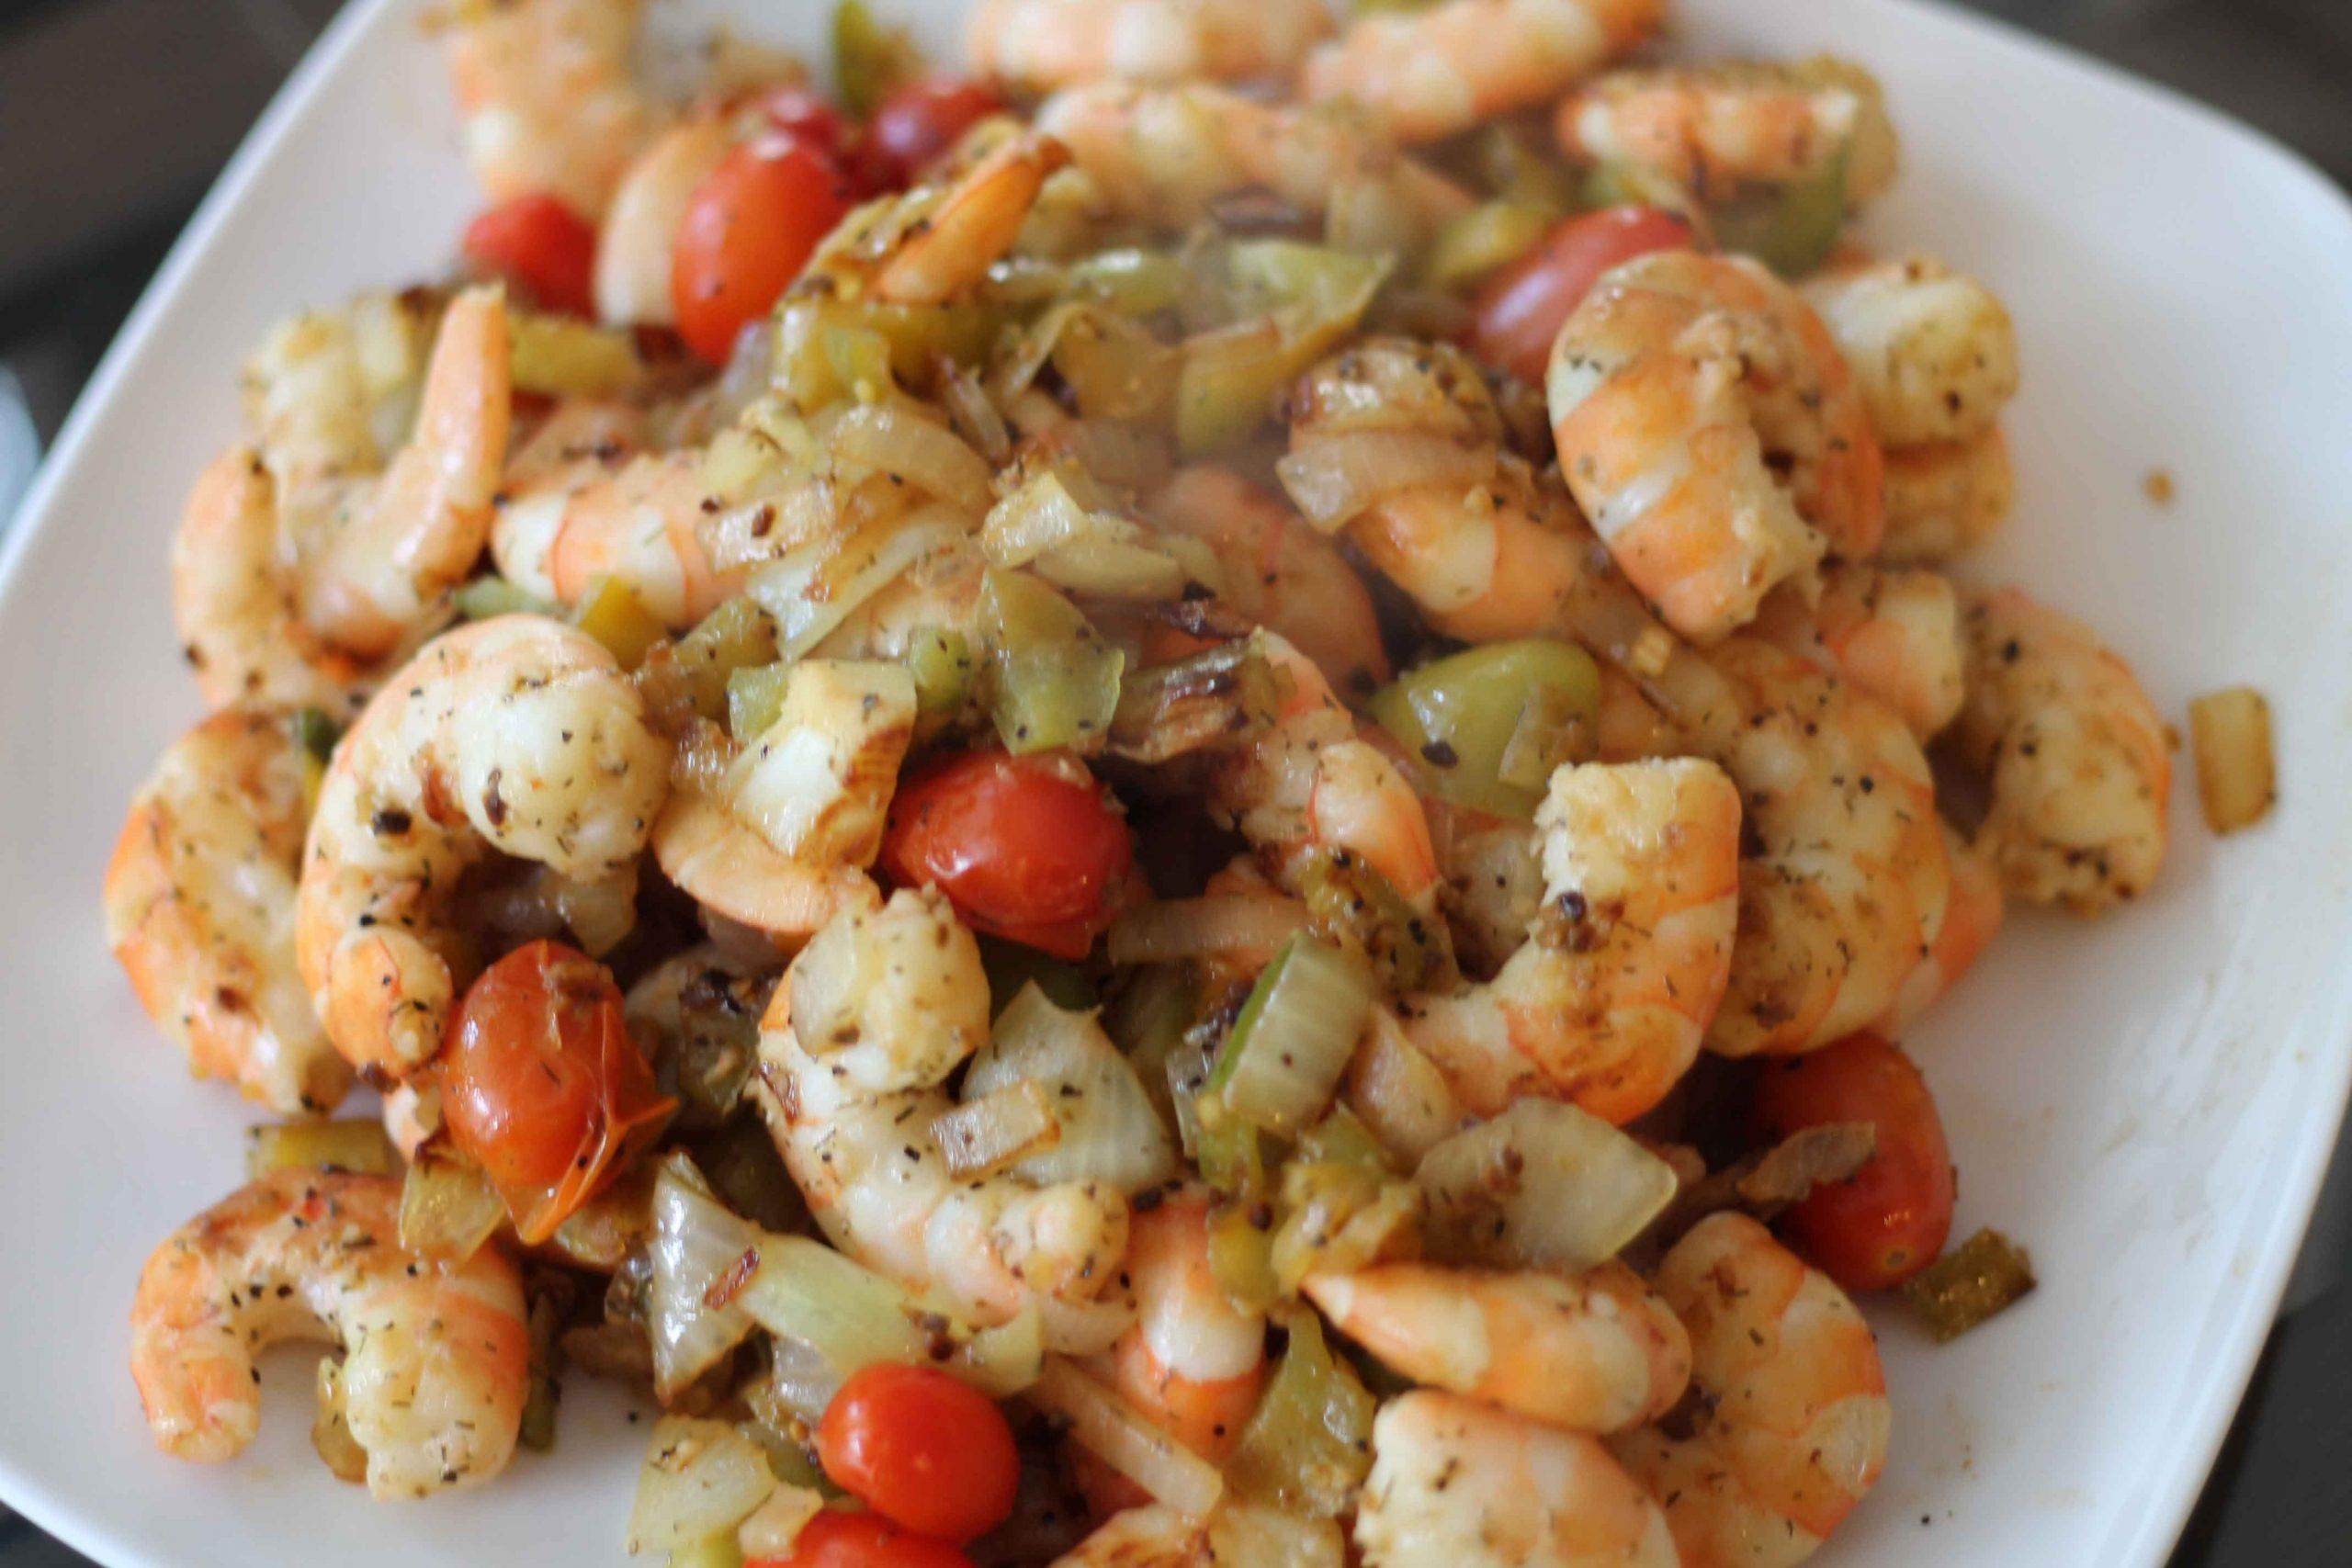 This one pot shrimp and veggies recipe is super simple! You can even mix it up by using your favorite veggies or whatever you have in your fridge.